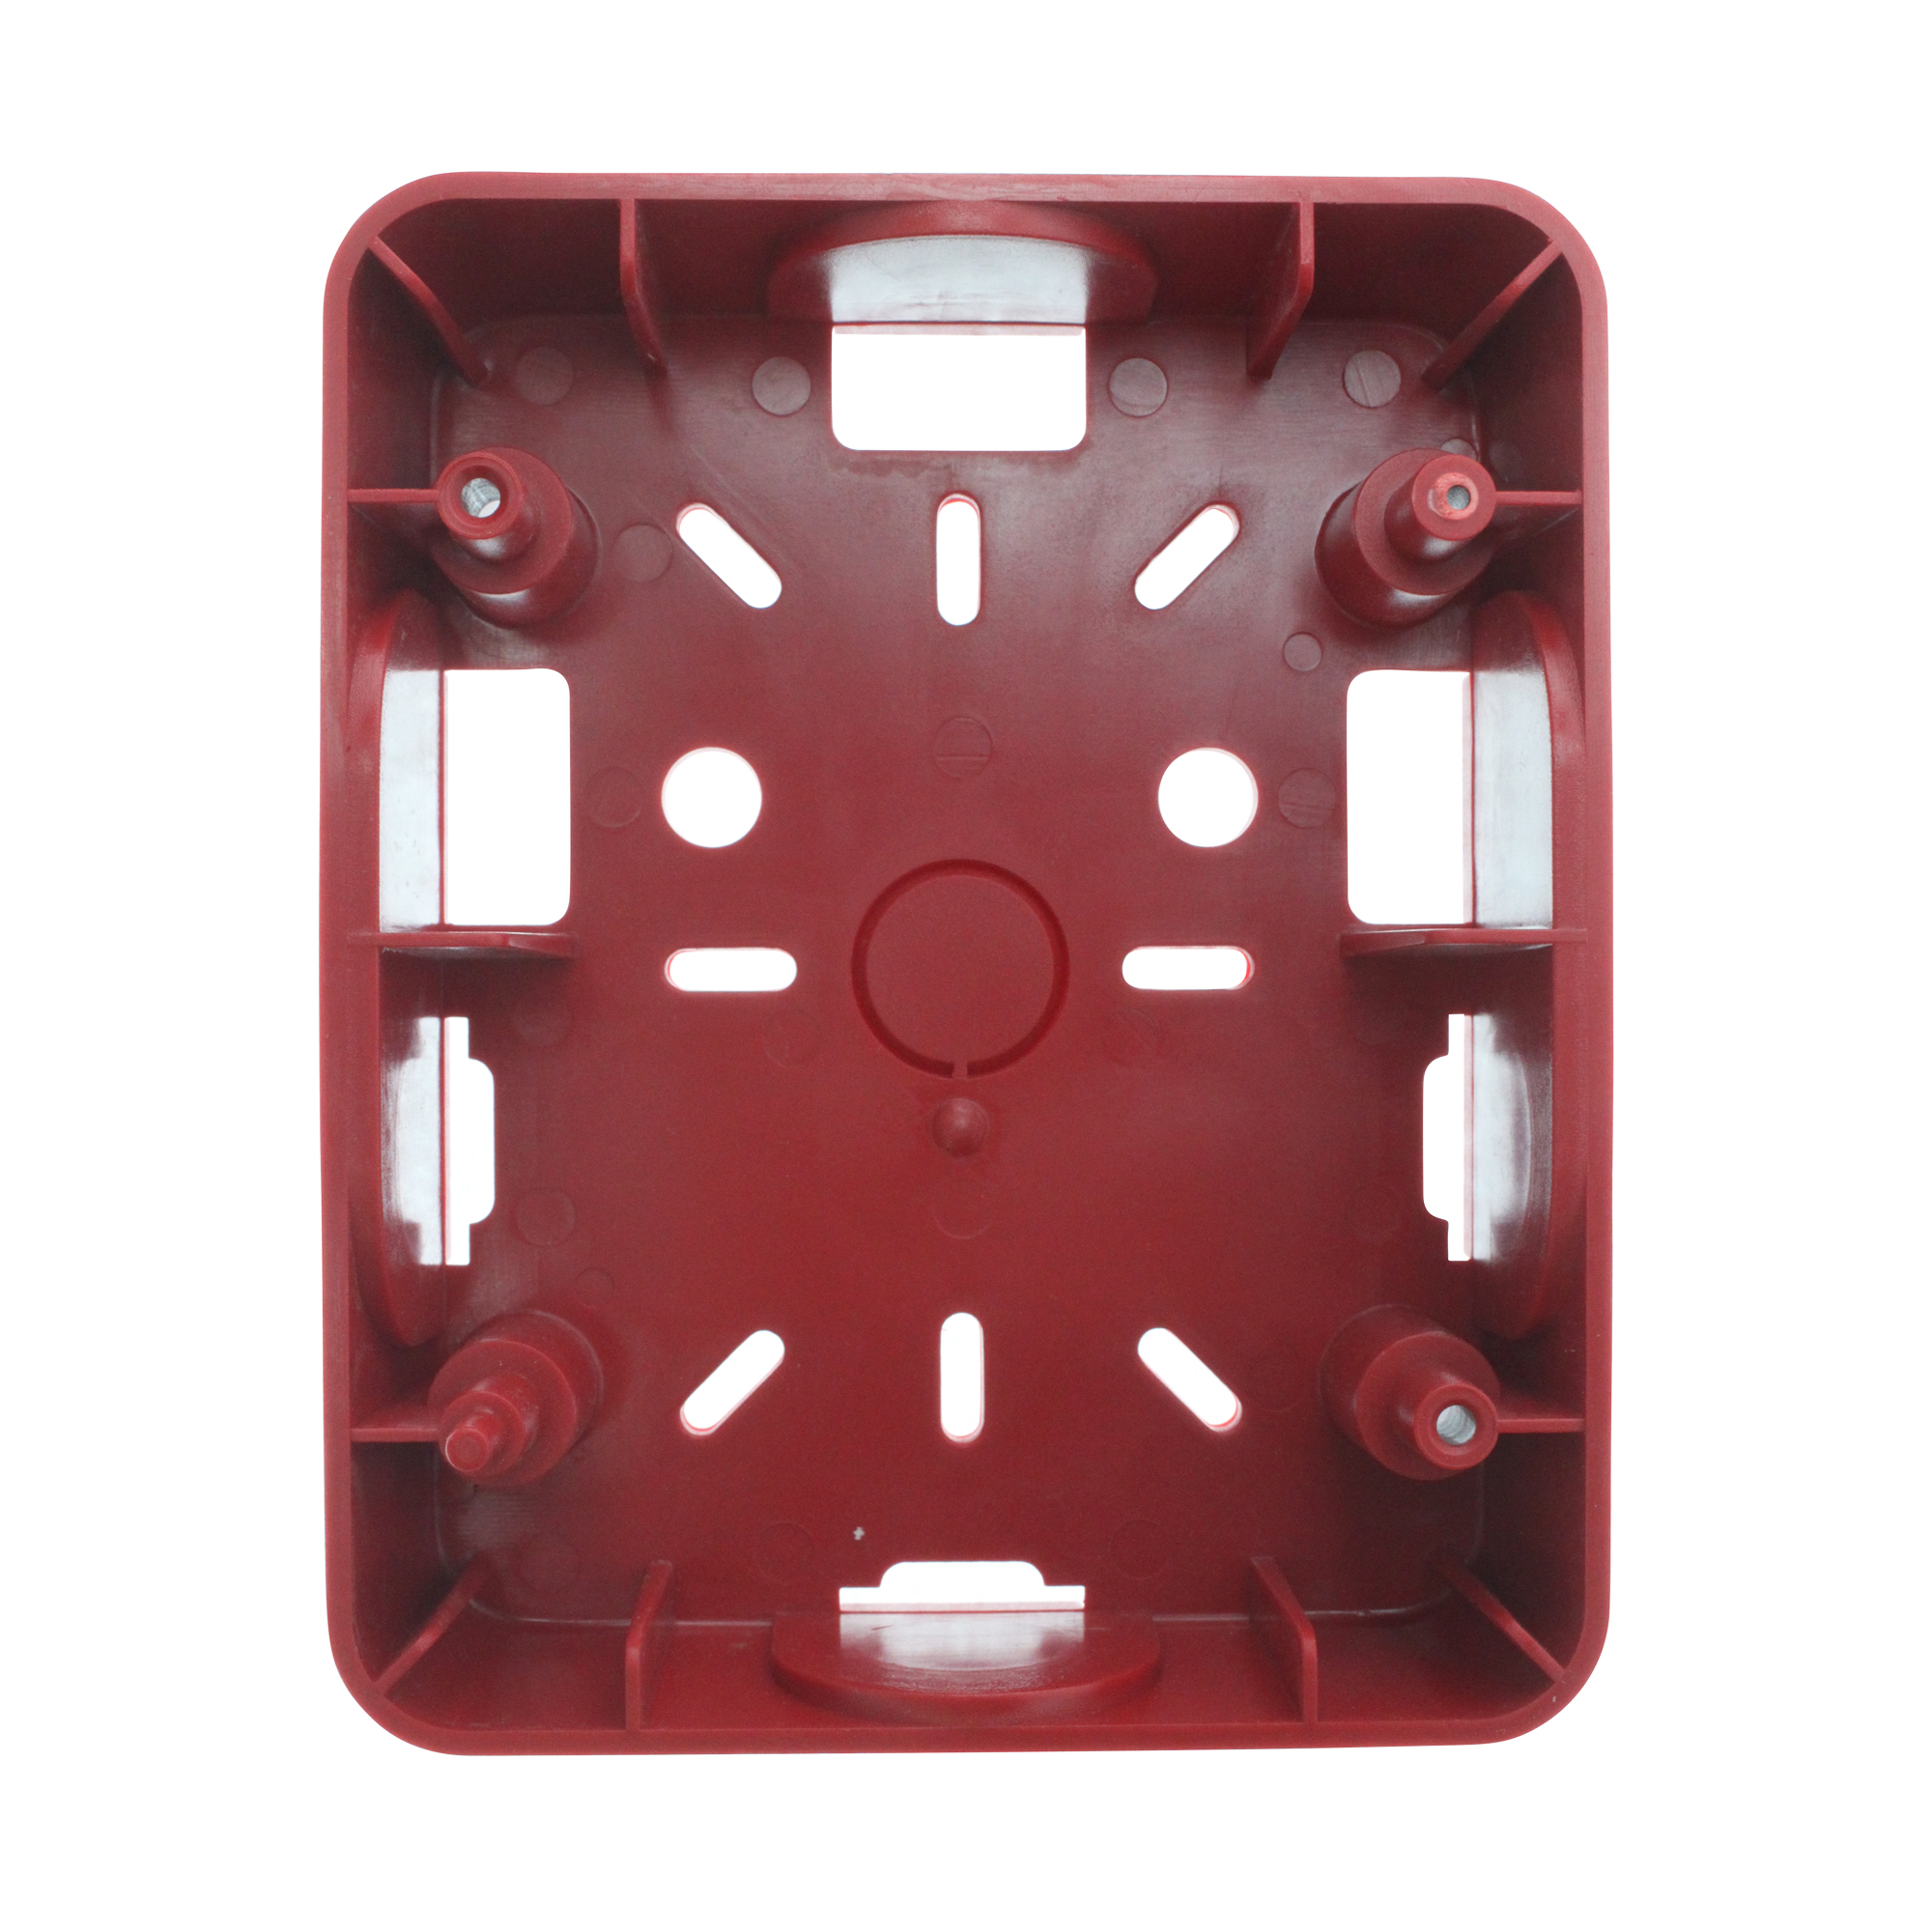 Bosch GSB Surface Mount Alarm Device Back-Box, Red, Plastic, 1/2-Inch KO's